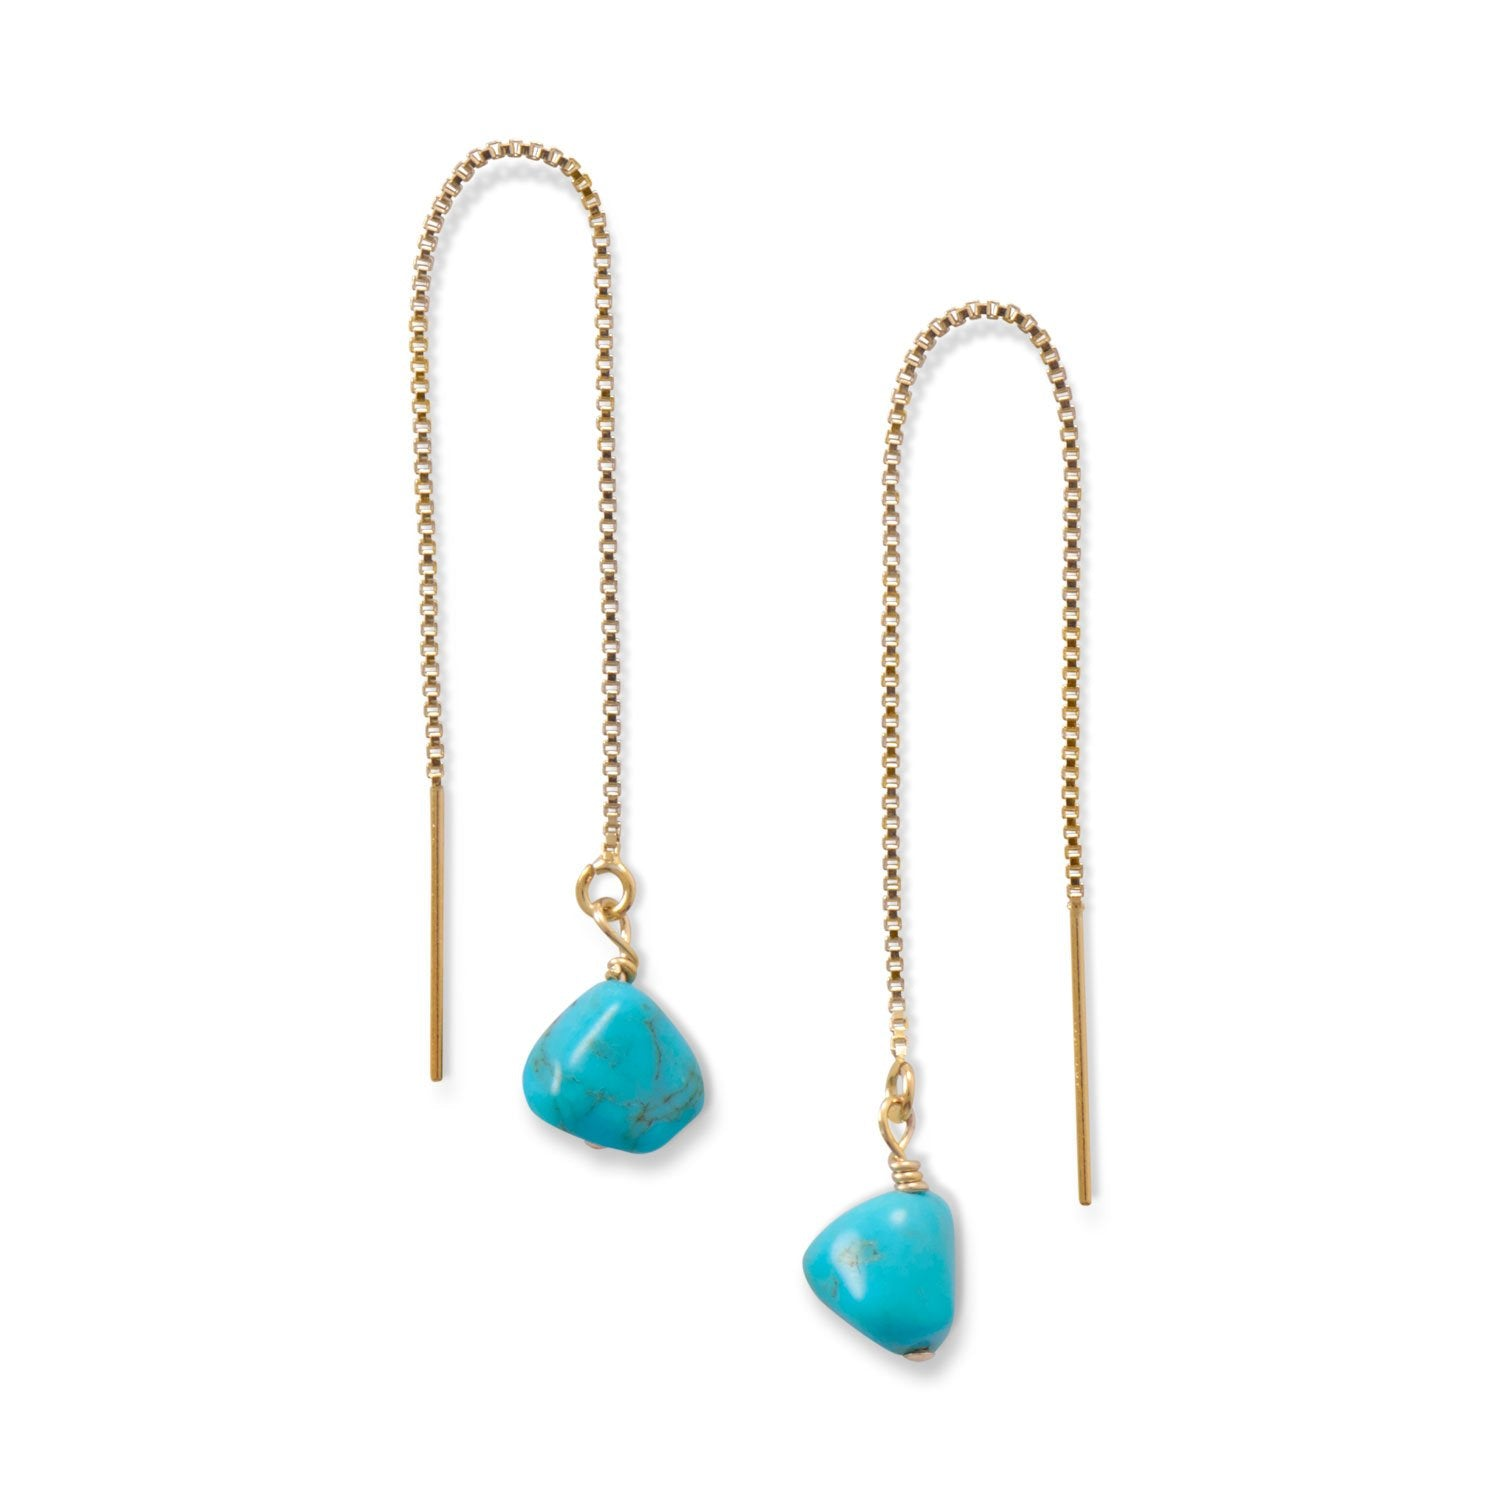 Turquoise Bead Threader Earrings - Rocky Mt. Outlet Inc - Shop & Save 24/7